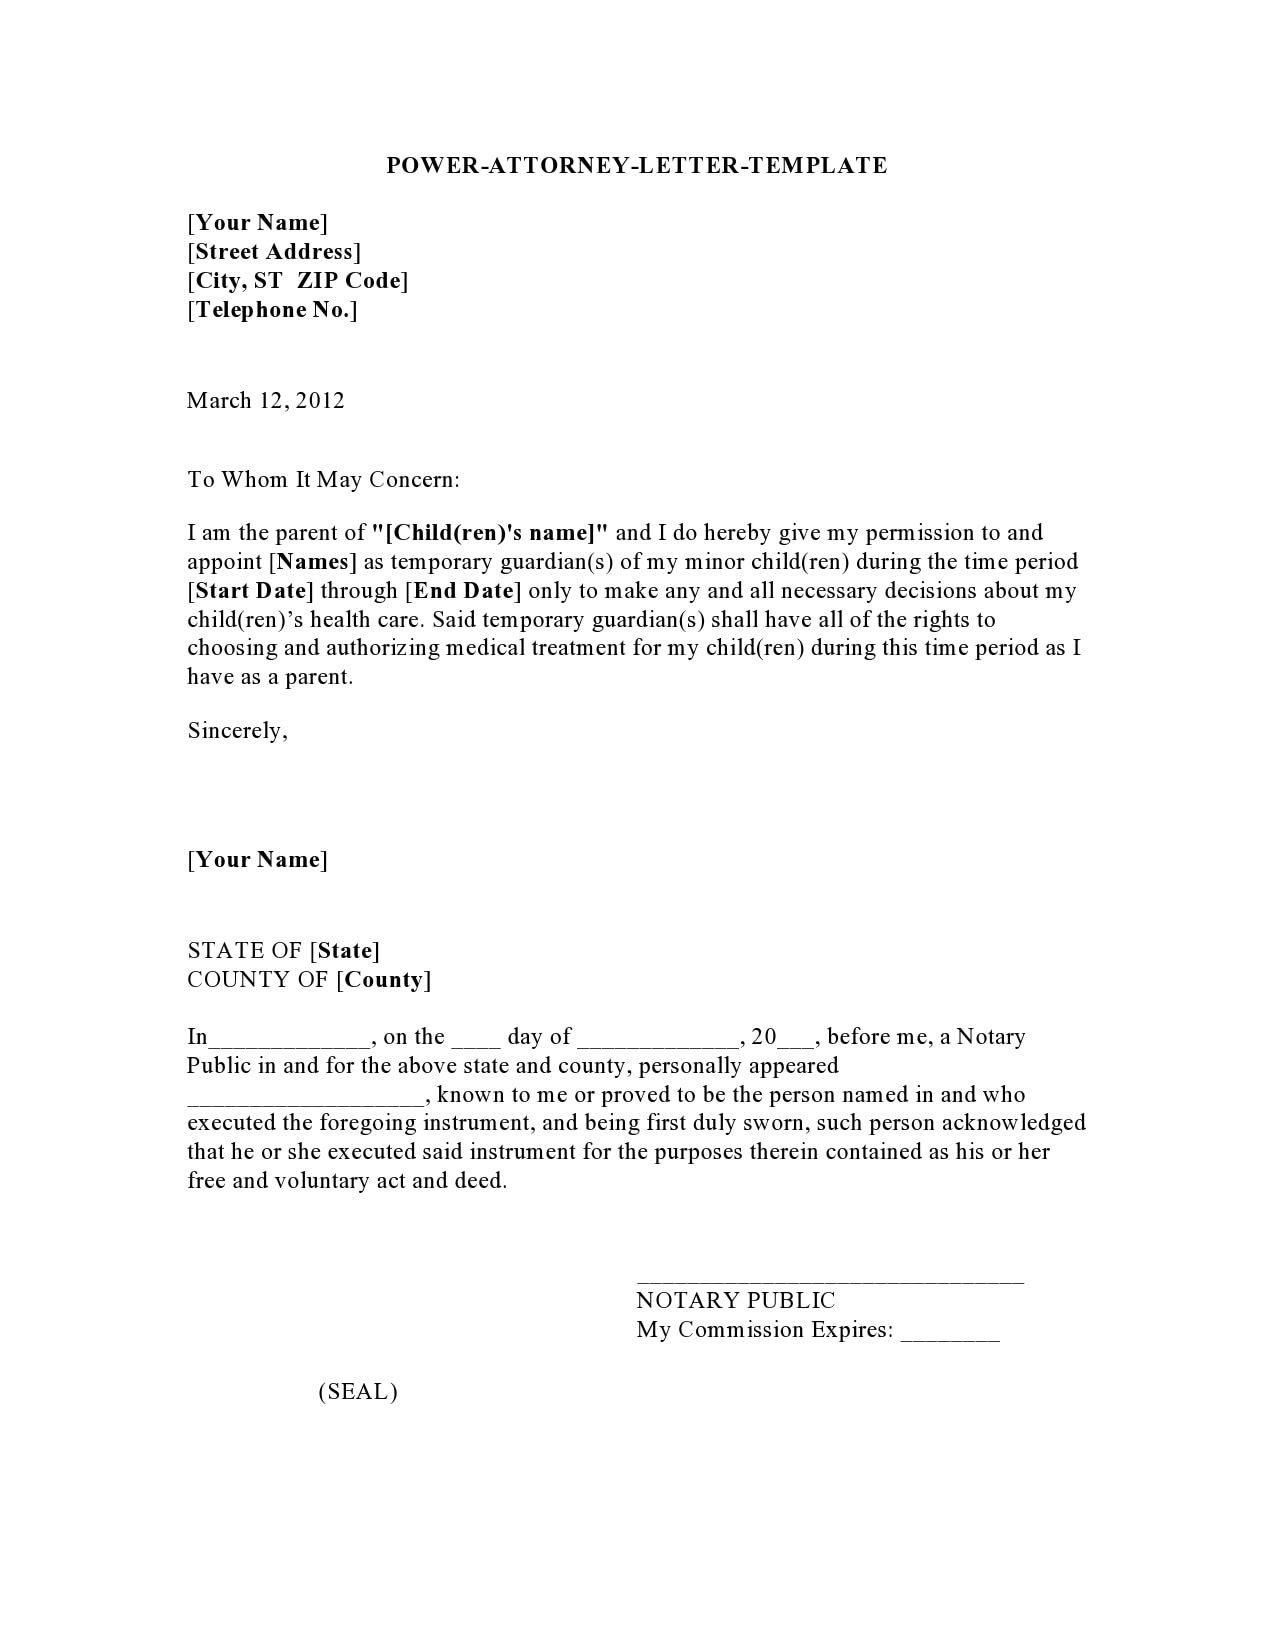 power of attorney letter 08